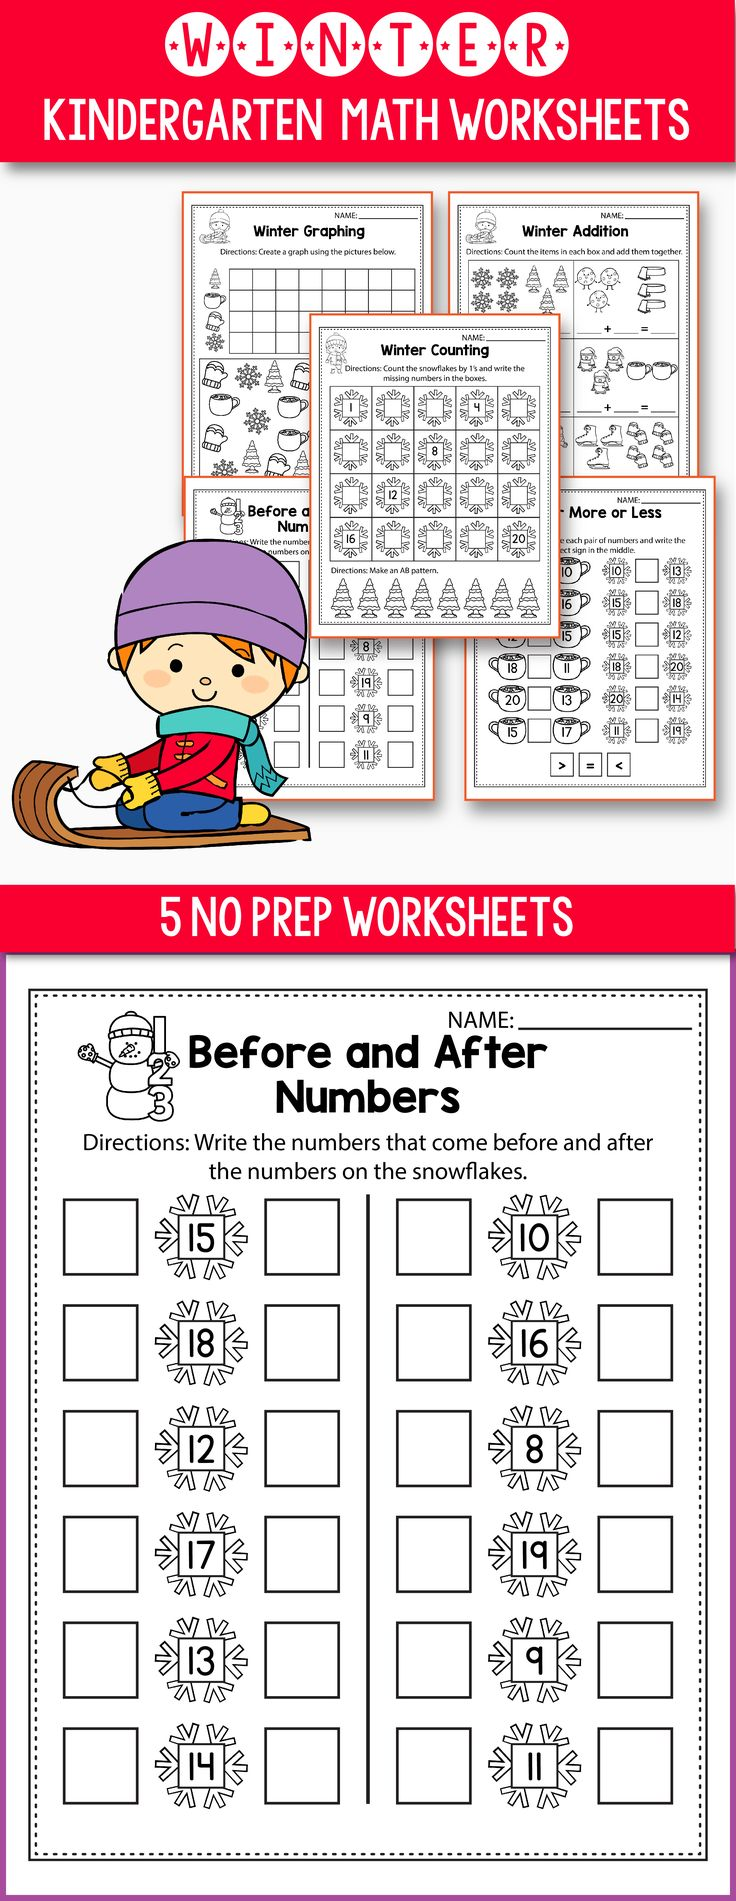 Winter Activities For Kindergarten (Math No Prep) - Winter Worksheets perfect for preschool, kindergarten or first grade kids. This worksheets feature polar bears, snowflakes, snowman and other adorable winter pictures. Great for morning work or early finishers. Winter math ideas including ten frames, place value, skip counting, tally marks, and 10 frames worksheets. Fun for students and print and go for teachers. #kindergarten #worksheet #free #math #preschool #1stgrade #prek